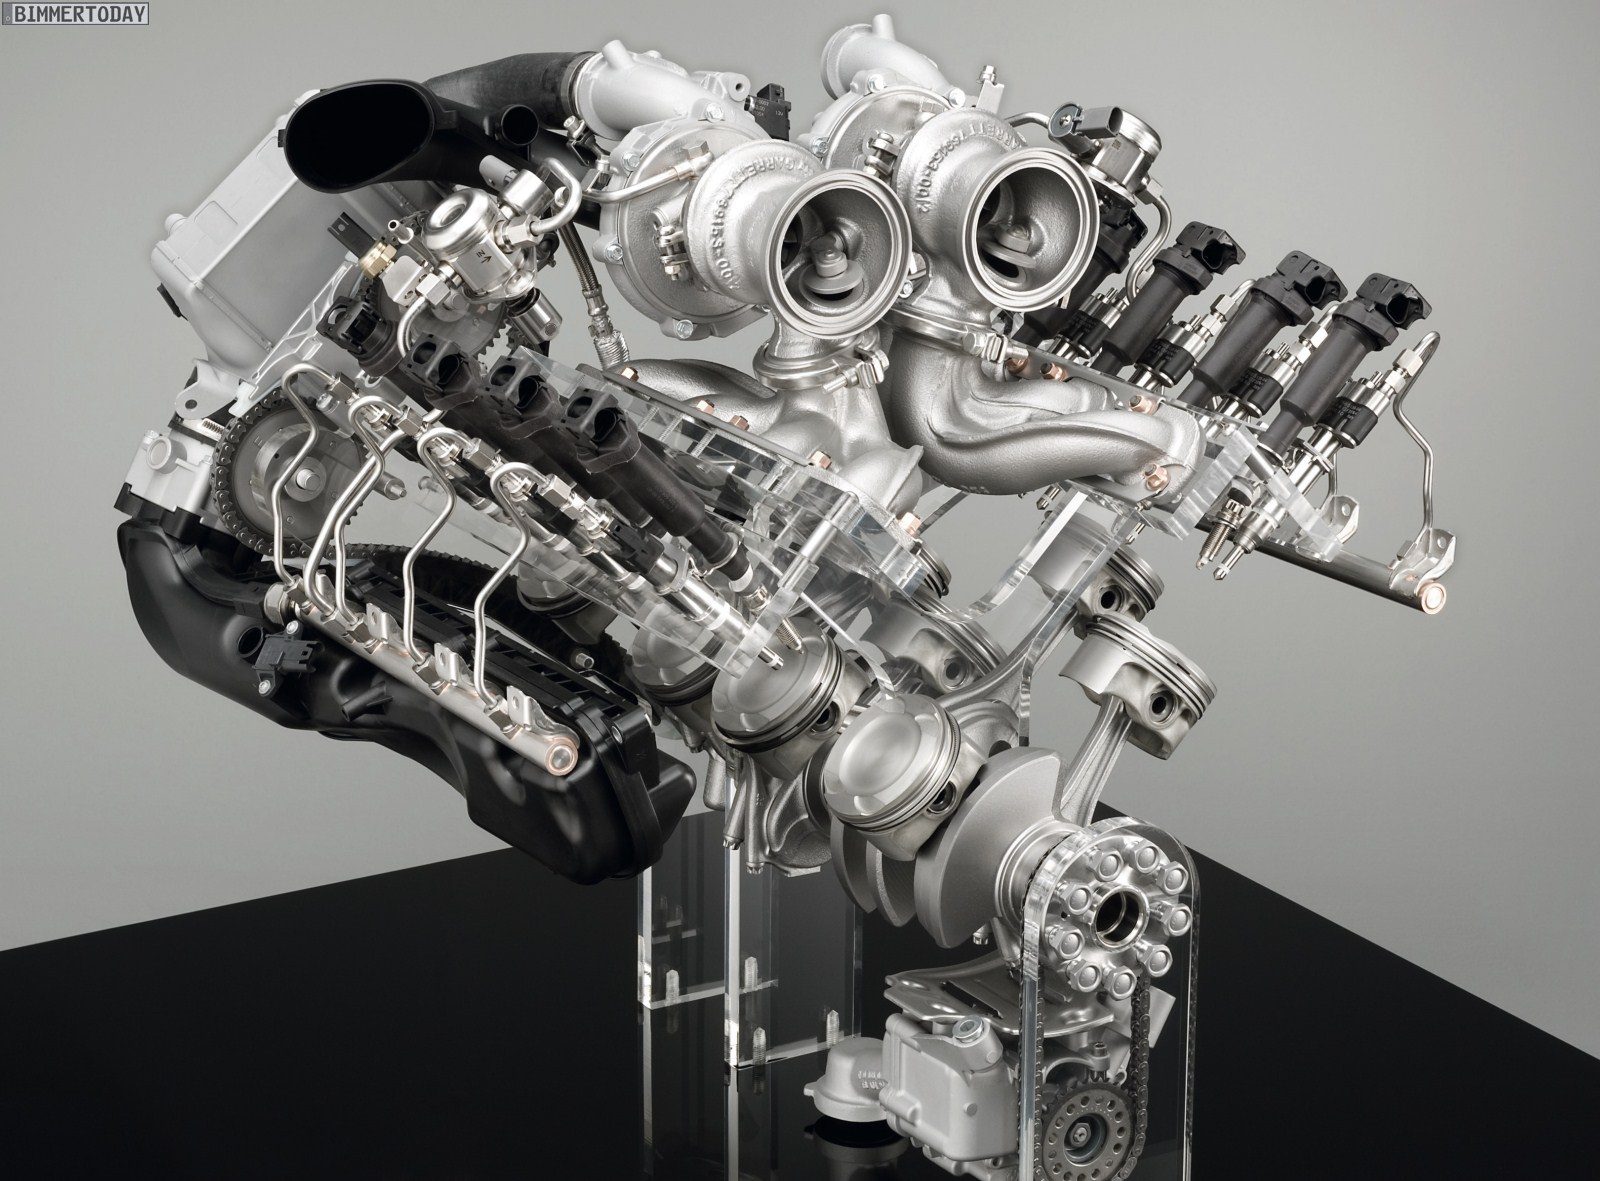 The Bmw N63 From Hot Vee To Hot Garbage Eeuroparts Com